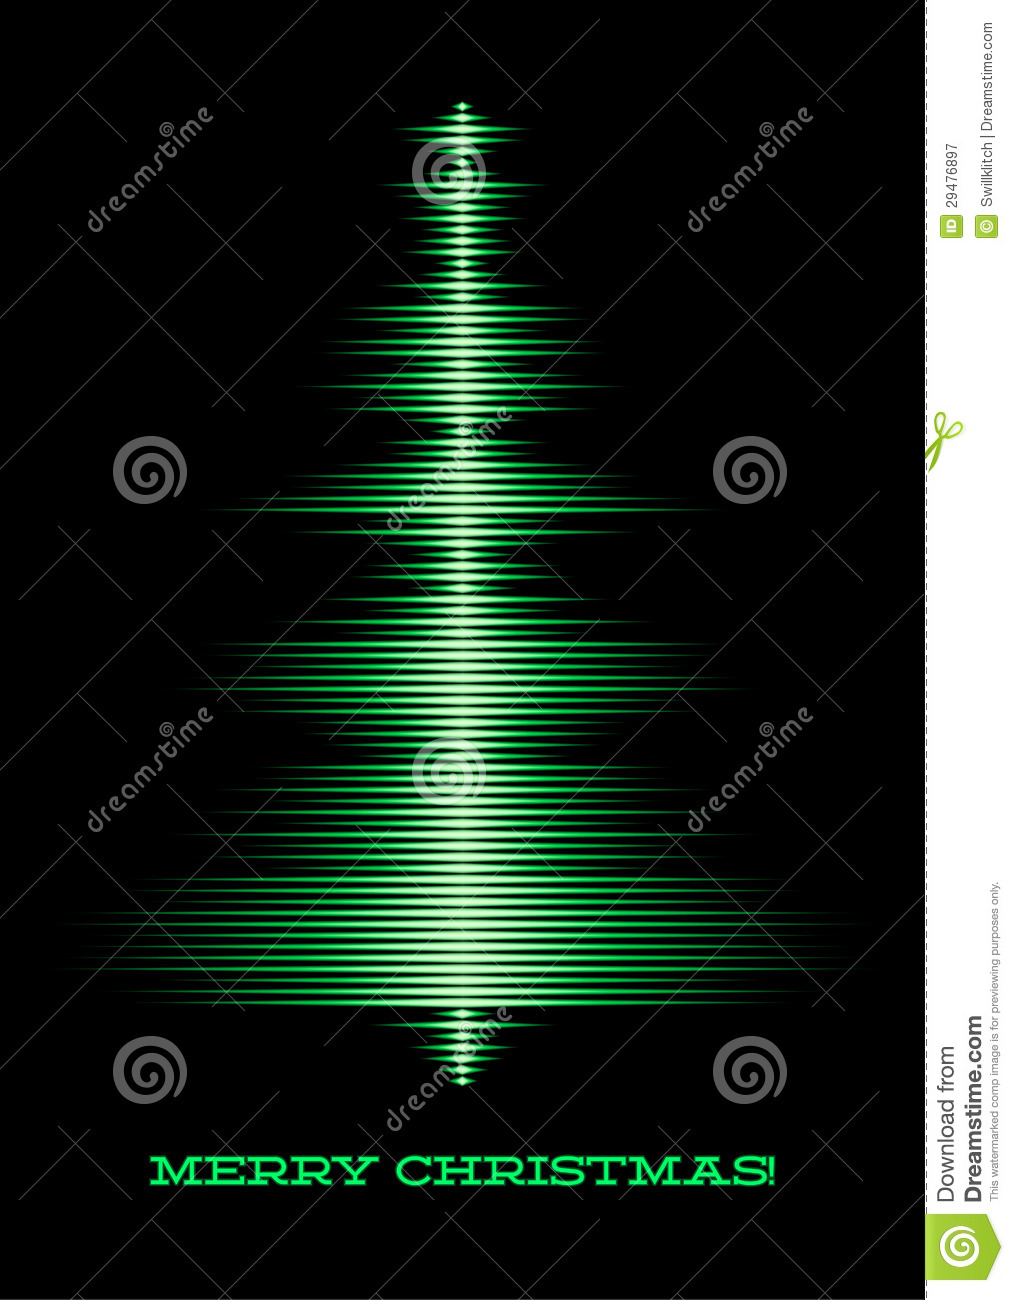 Musical Christmas Tree Card Stock Vector - Illustration of abstract ...